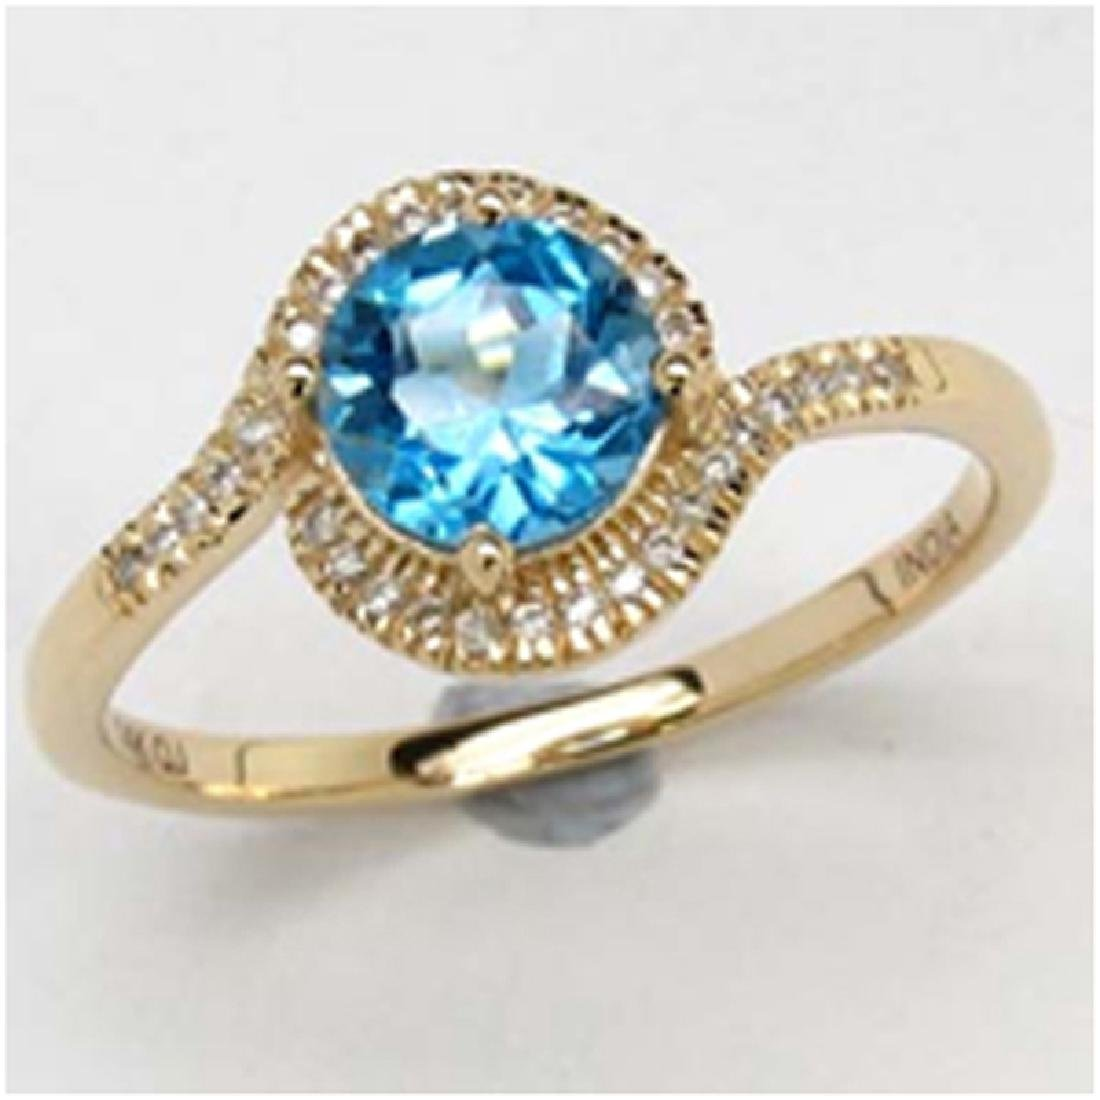 *Fine Jewelry 14K Gold, 2.18CT Swiss Blue Topaz Round